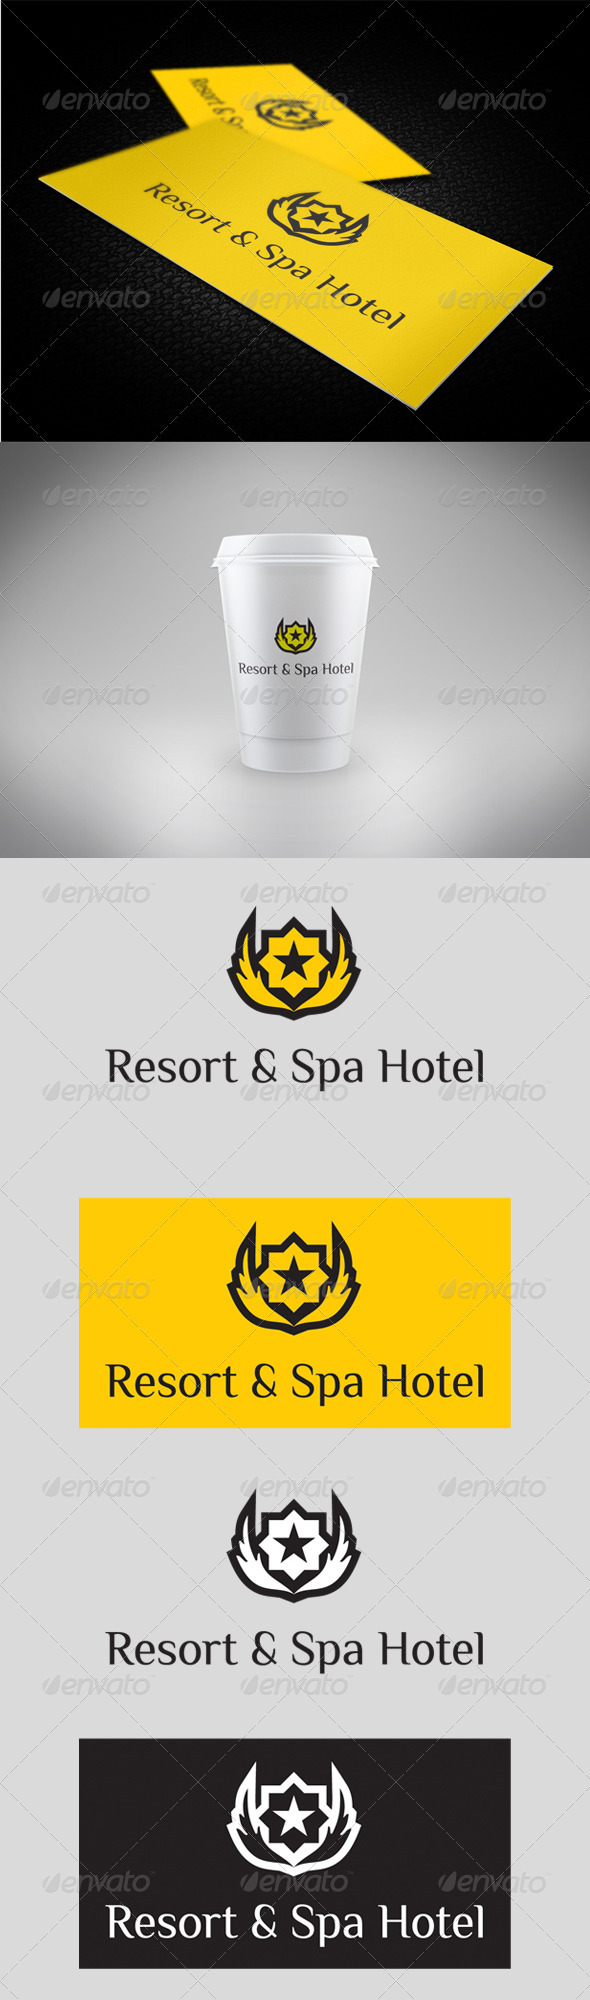 Resort & Spa Hotel Logo - Symbols Logo Templates